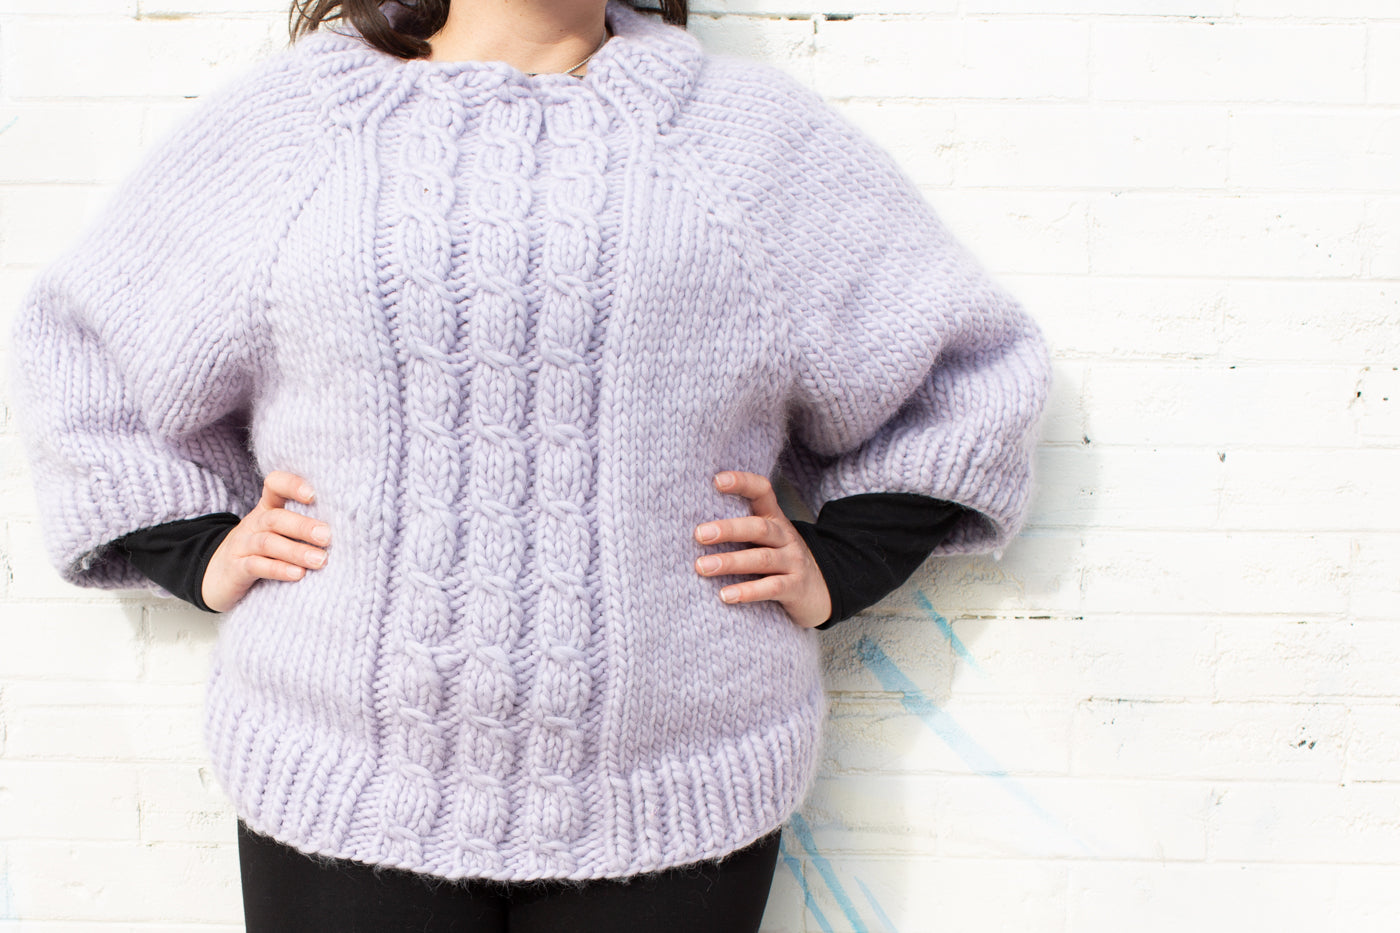 Women wearing pale lavender cable knit sweater, with her hands on her hips and the photograph is taken close up to show the sweater only.